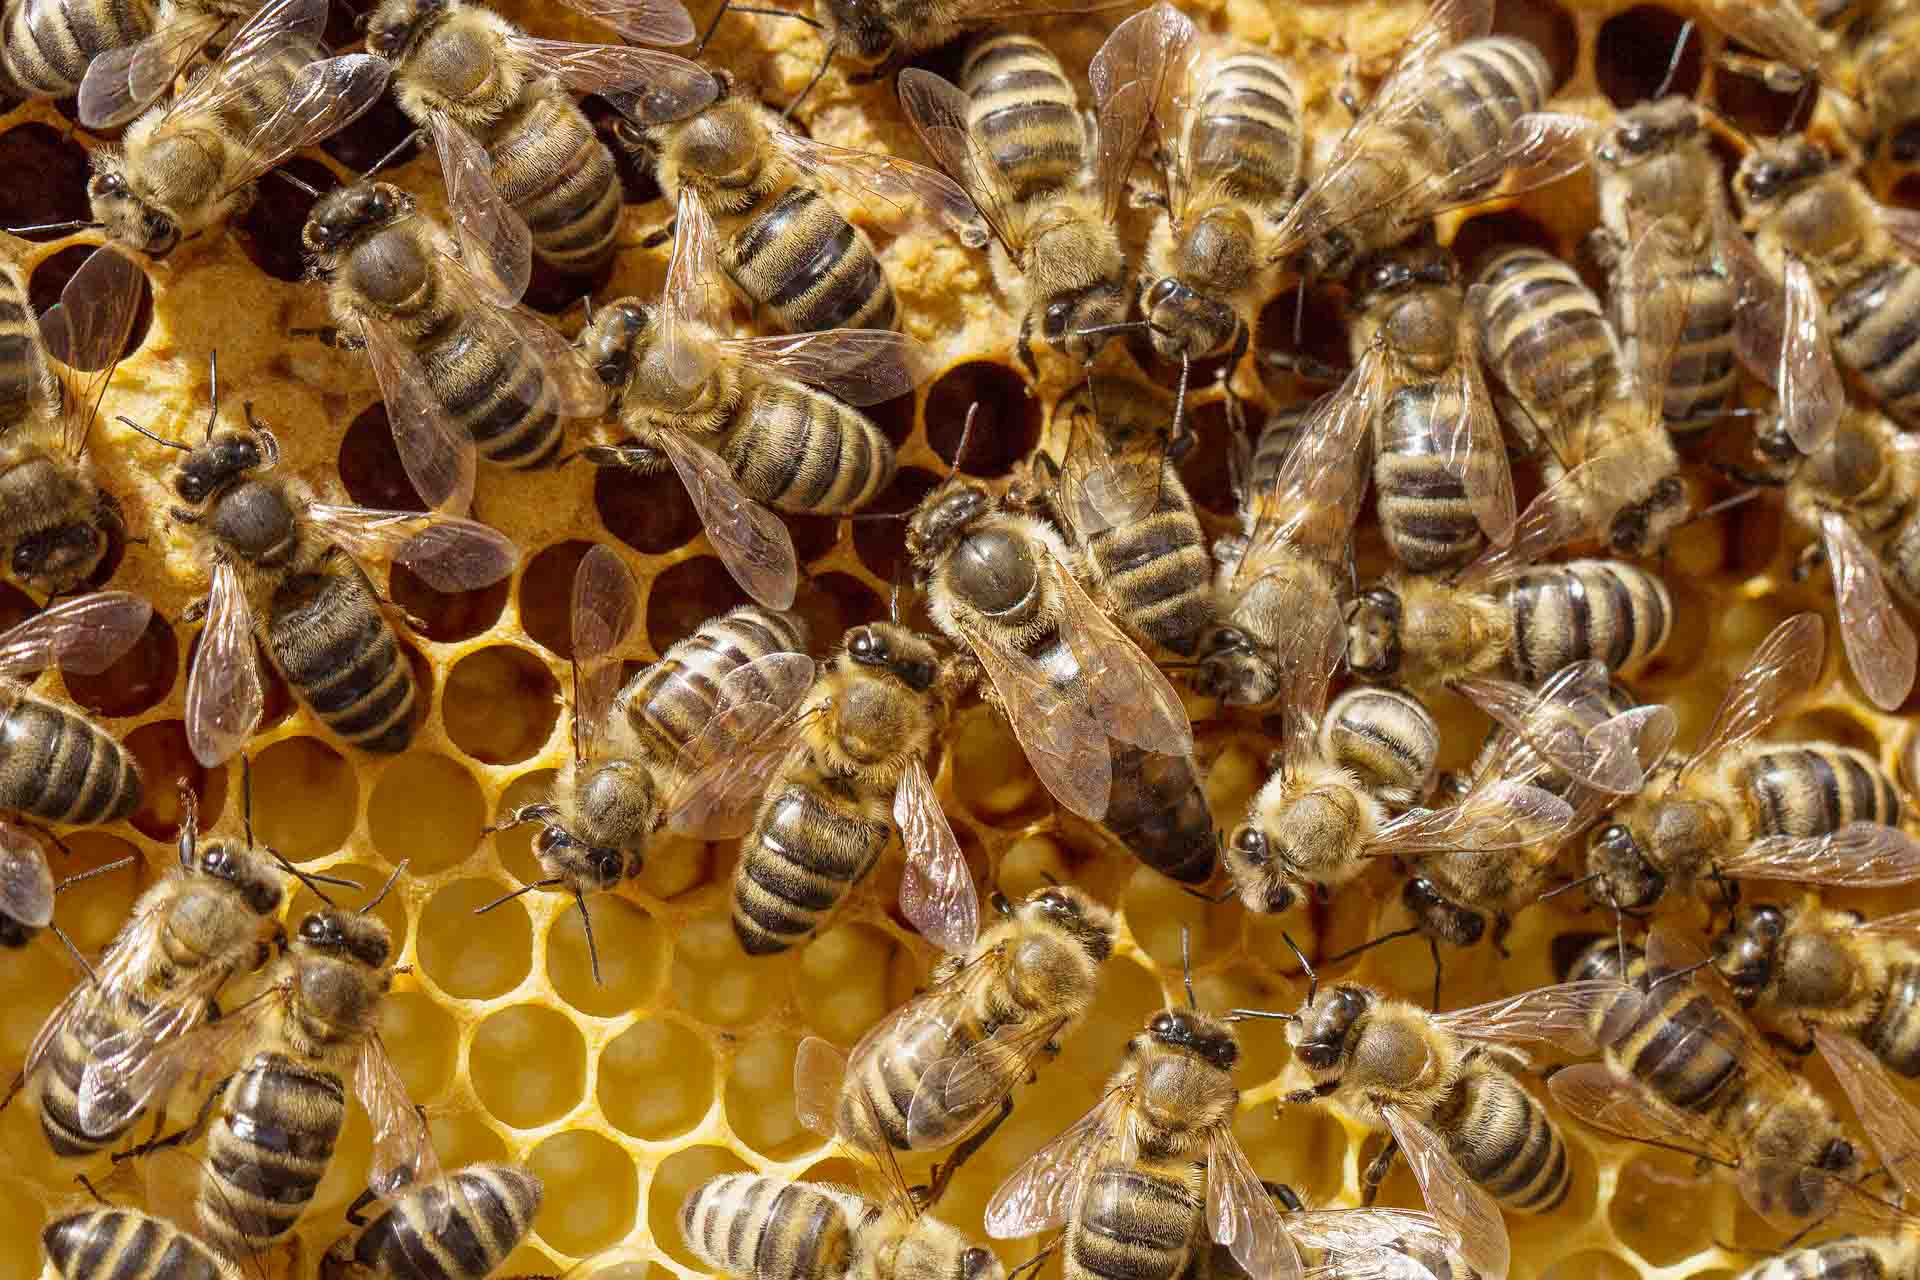 Hundreds of honeybees working on a honeycomb.